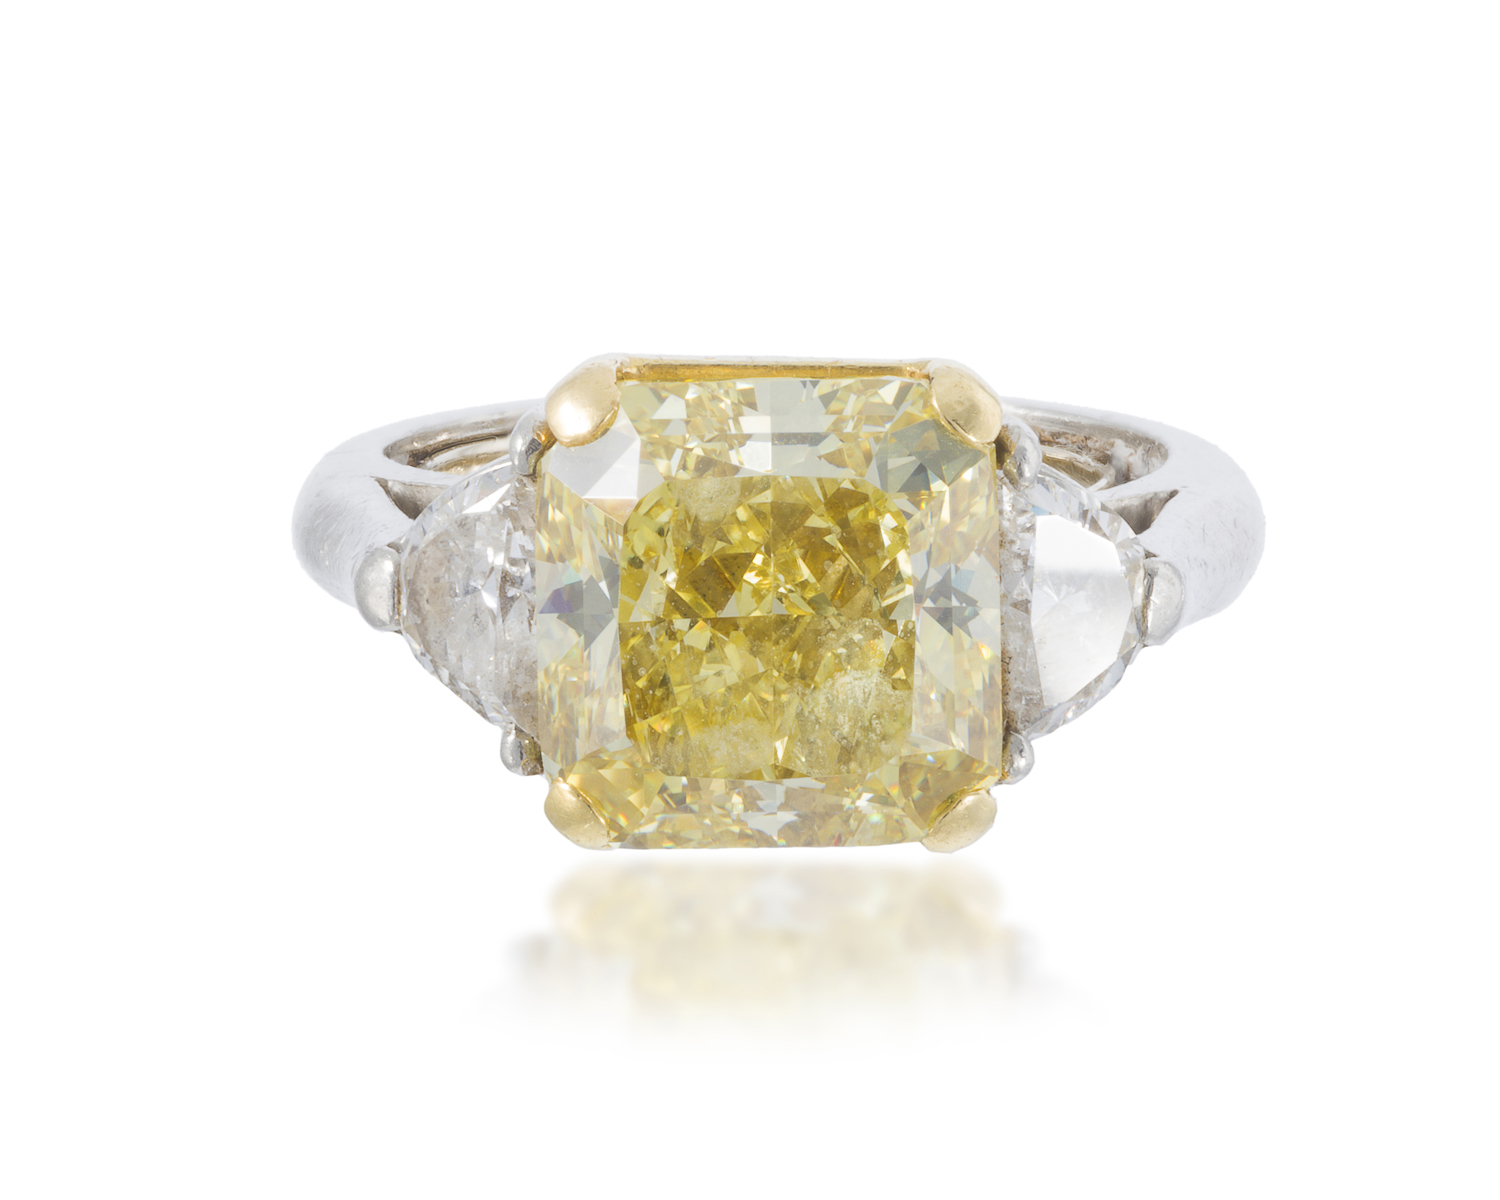 A Fancy Intense Yellow And Near Colorless Diamond Ring